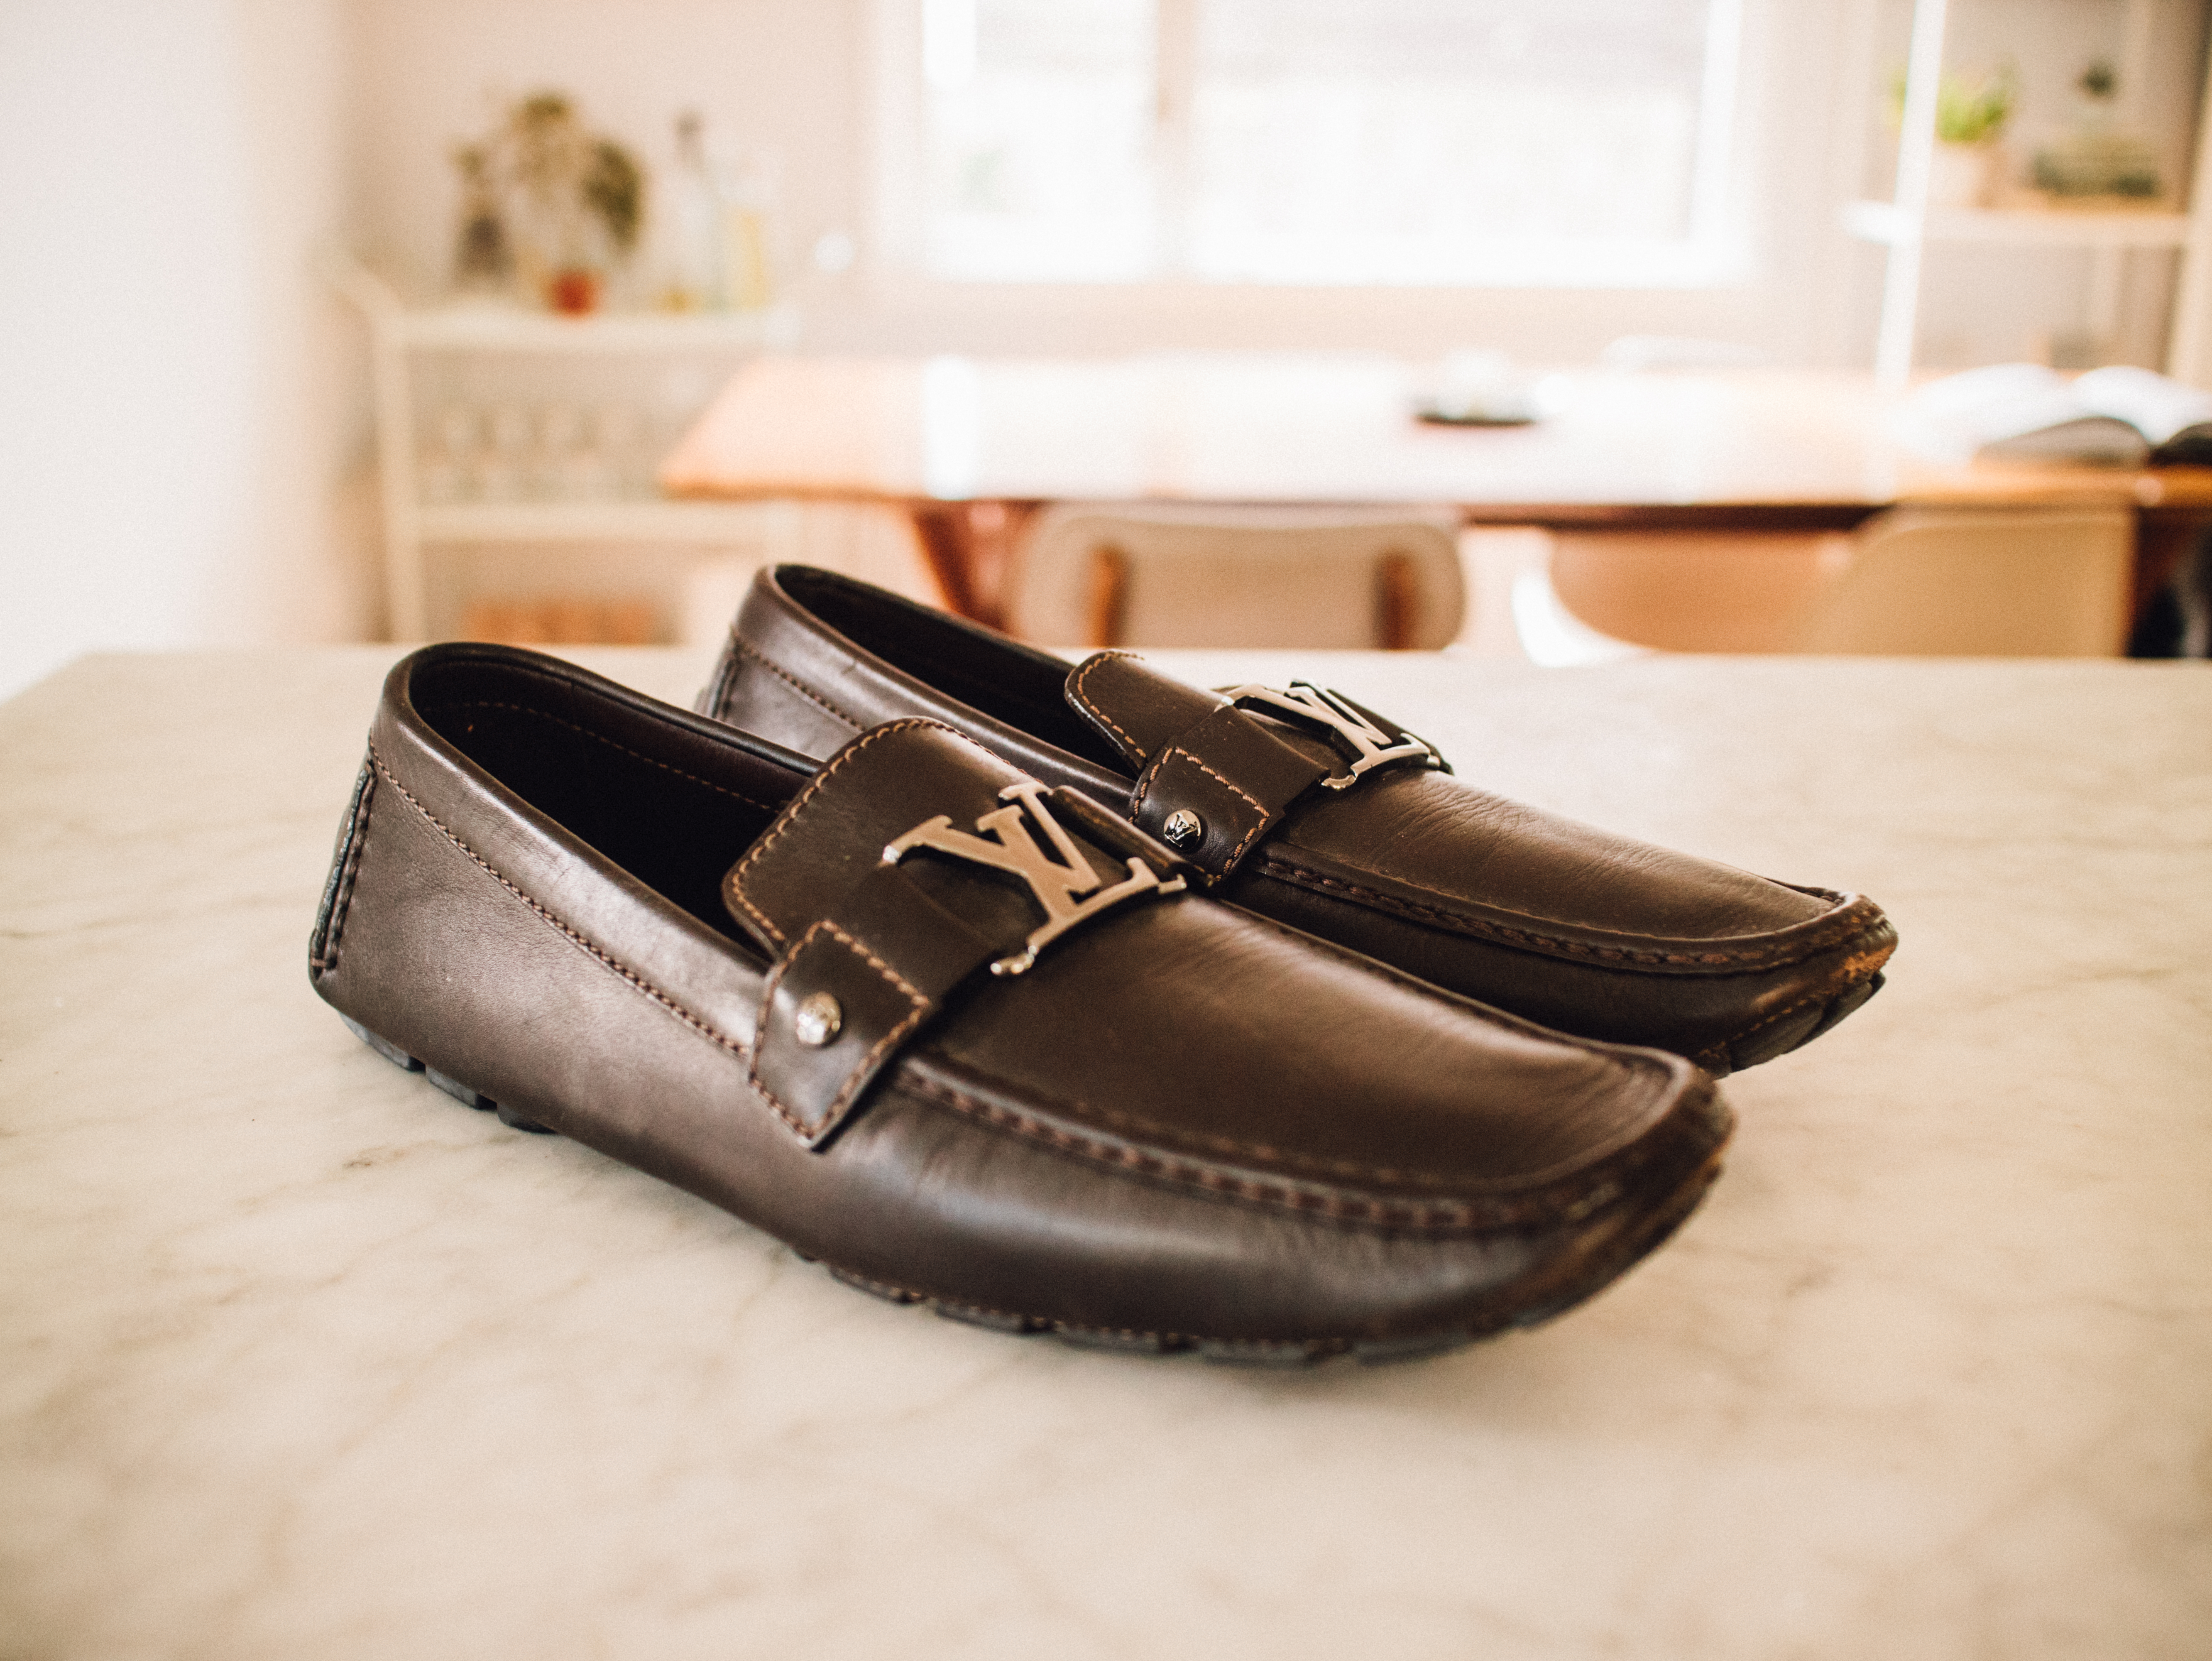 7d52aeed9bed Louis Vuitton Louis Vuitton Monte Carlo Car Shoe   Driving Loafers ...